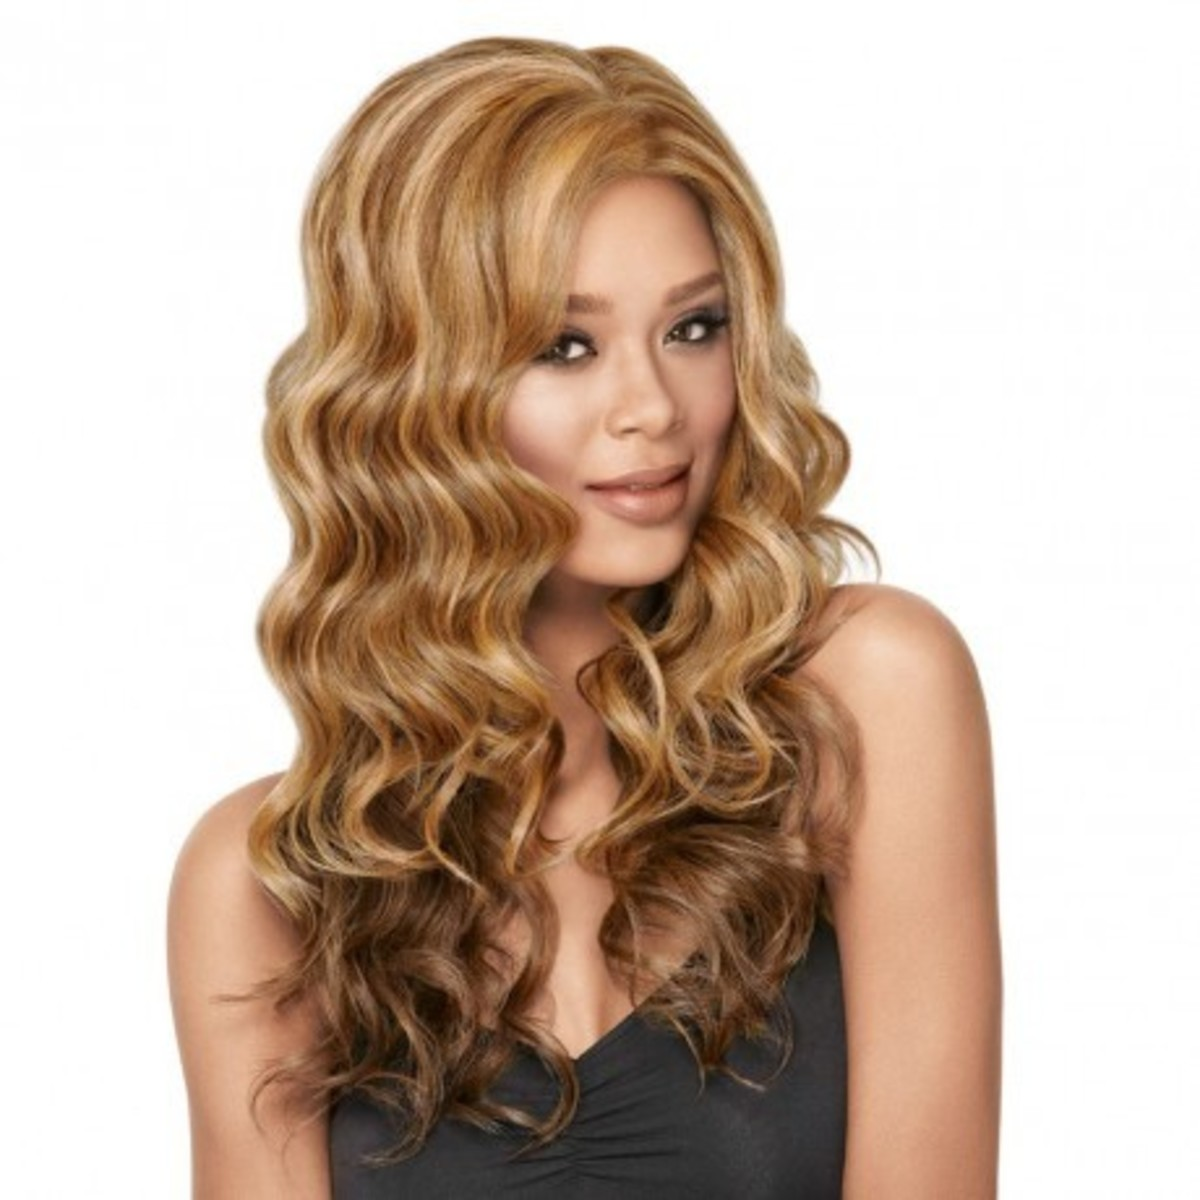 Luxhair Now Lace Front Goddess Waves - blonde